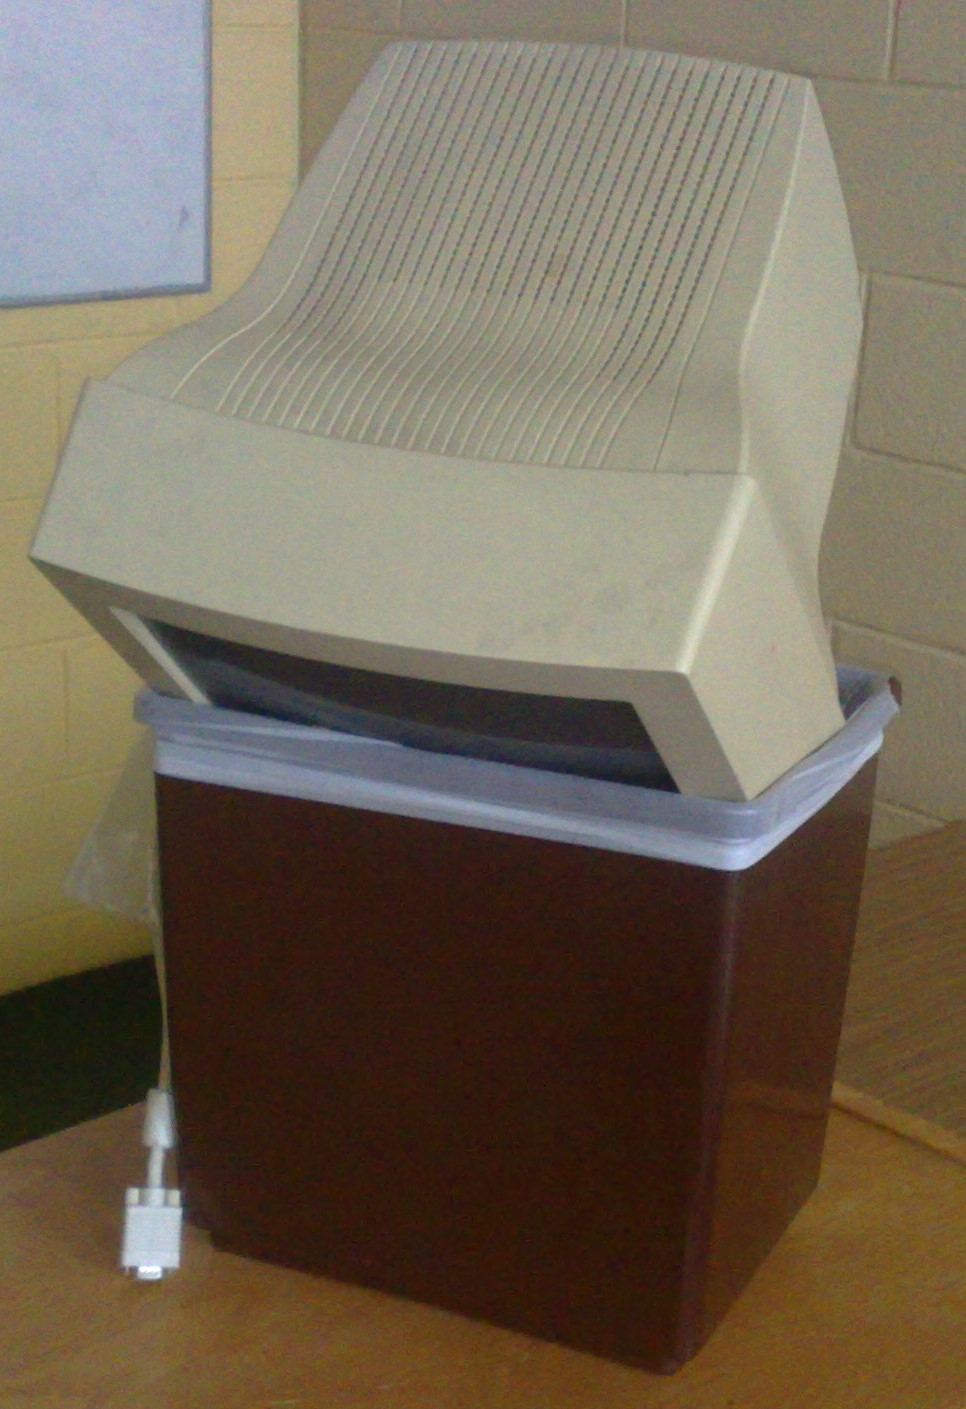 Computer in Trash Can